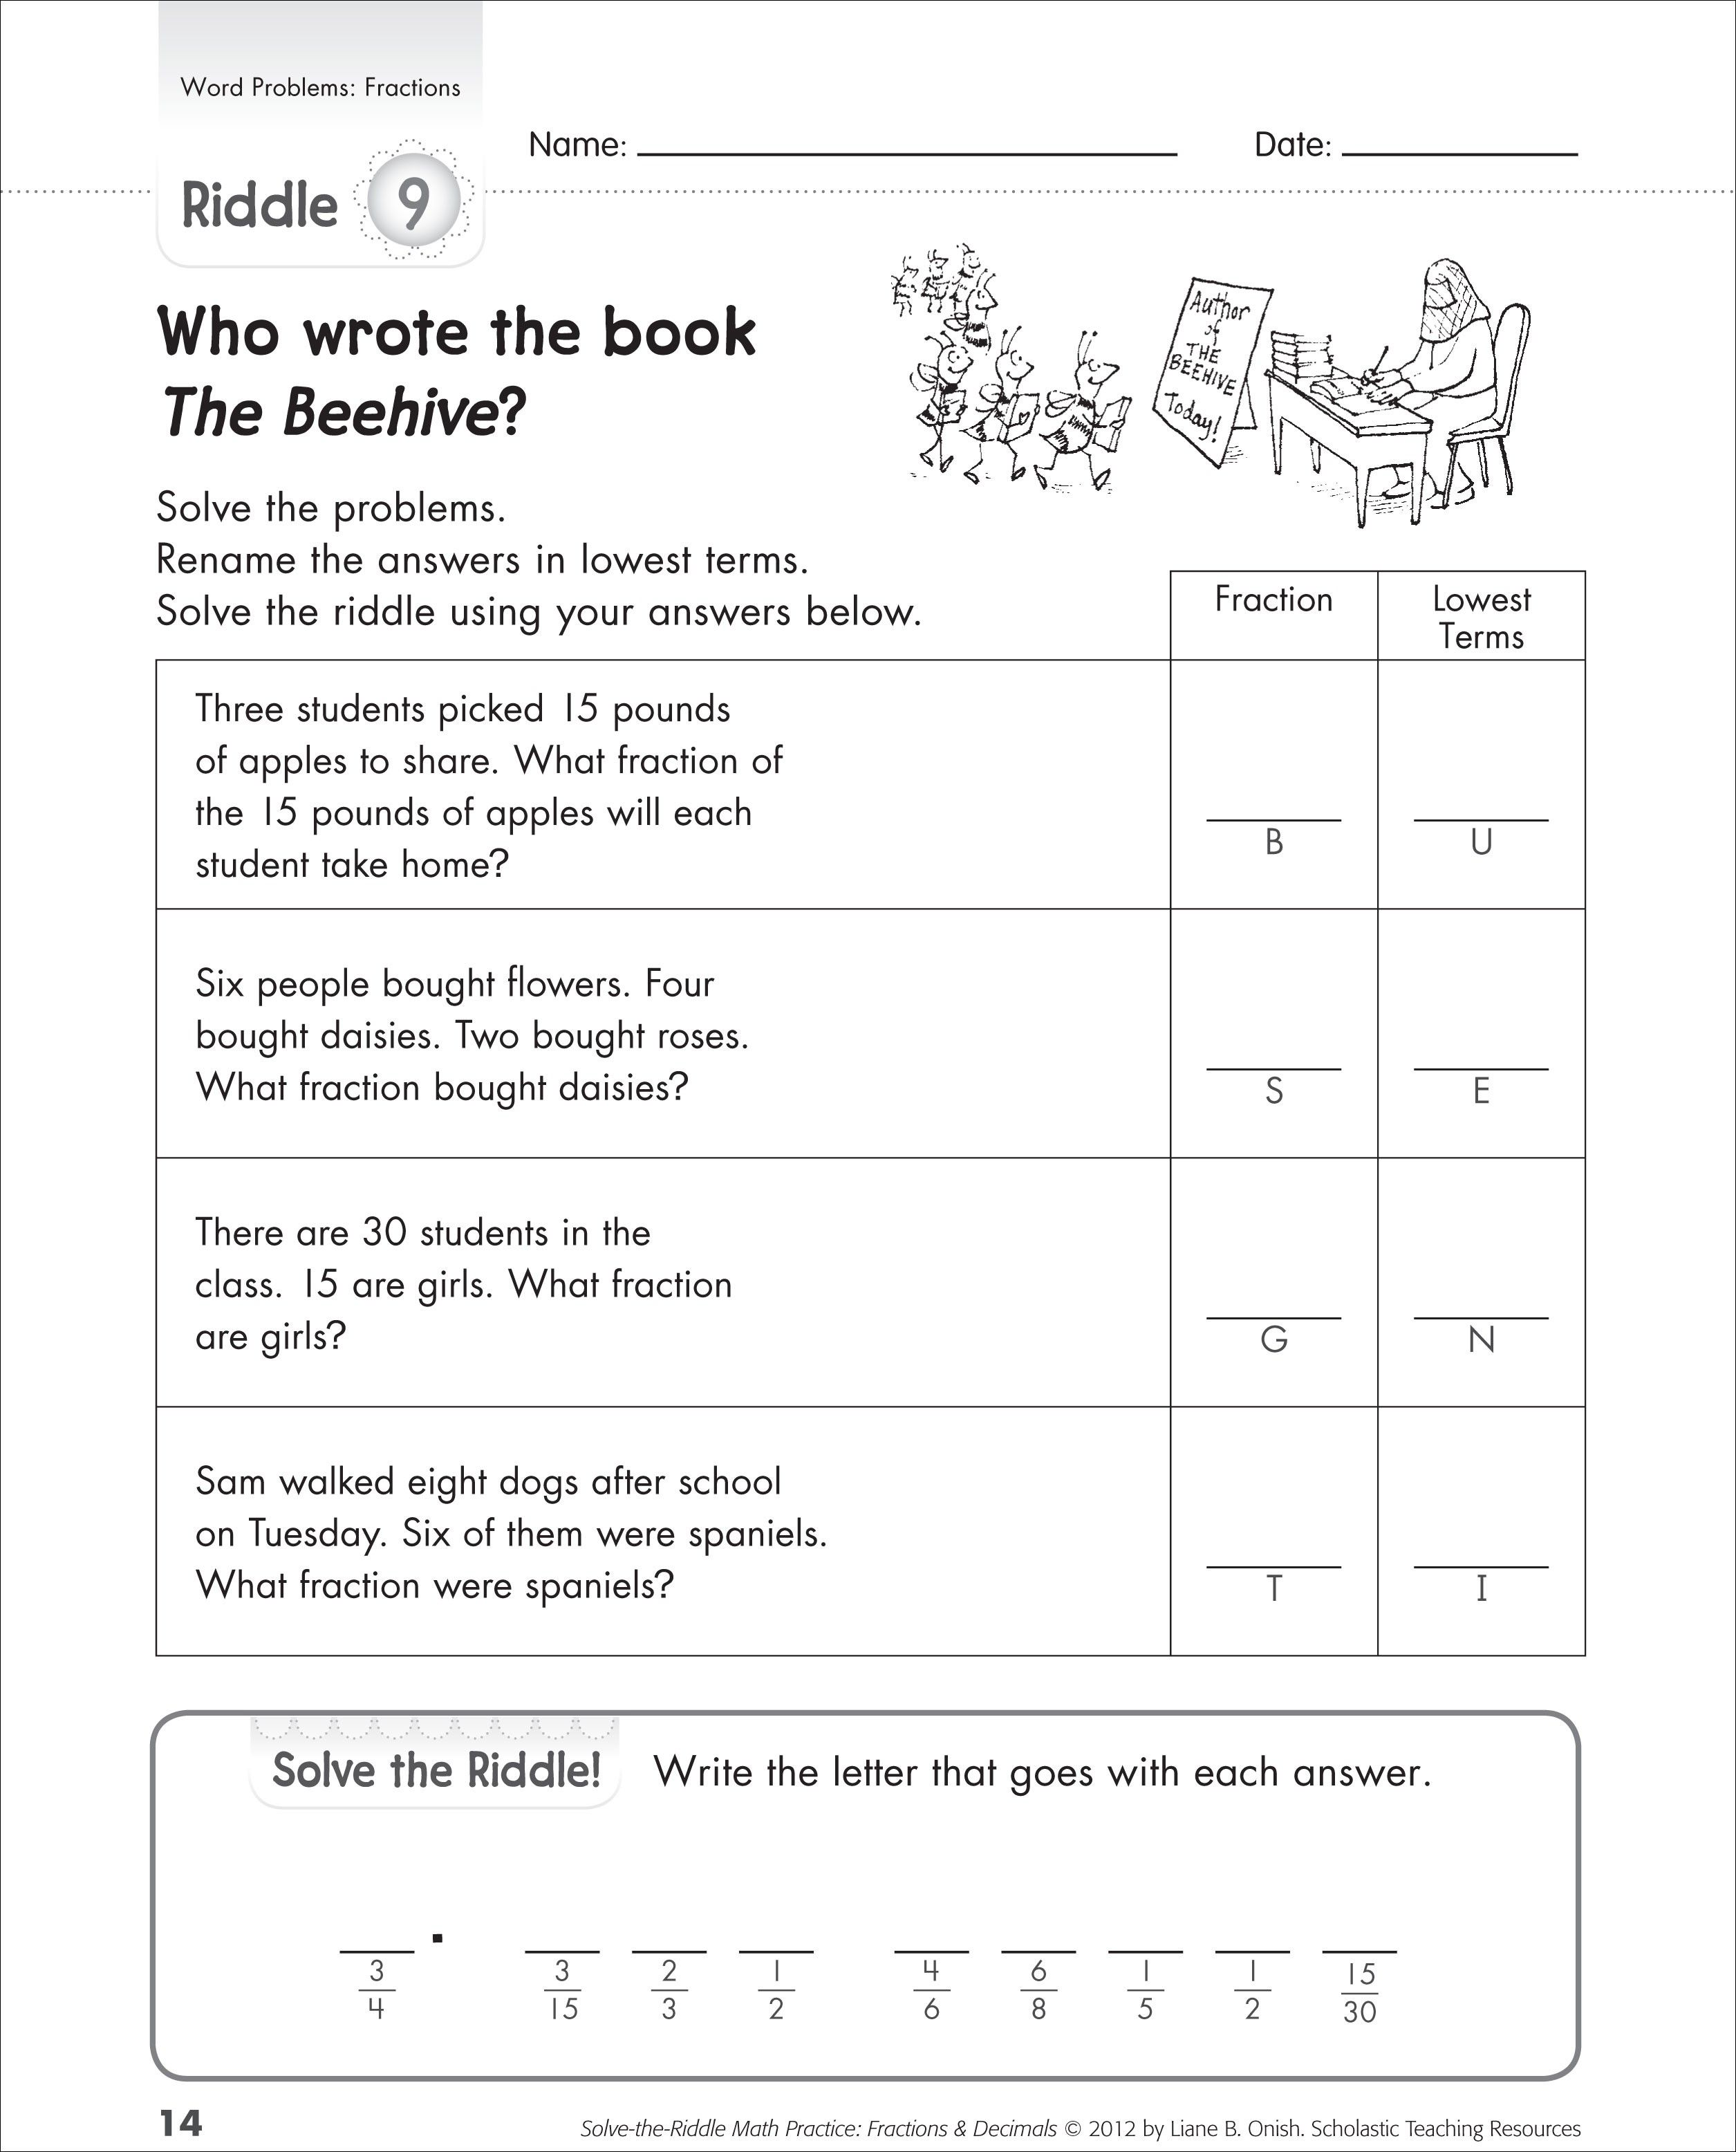 worksheet Adding Fractions Problems help your kids learn fractions with these word problems fraction add subtract multiply divide